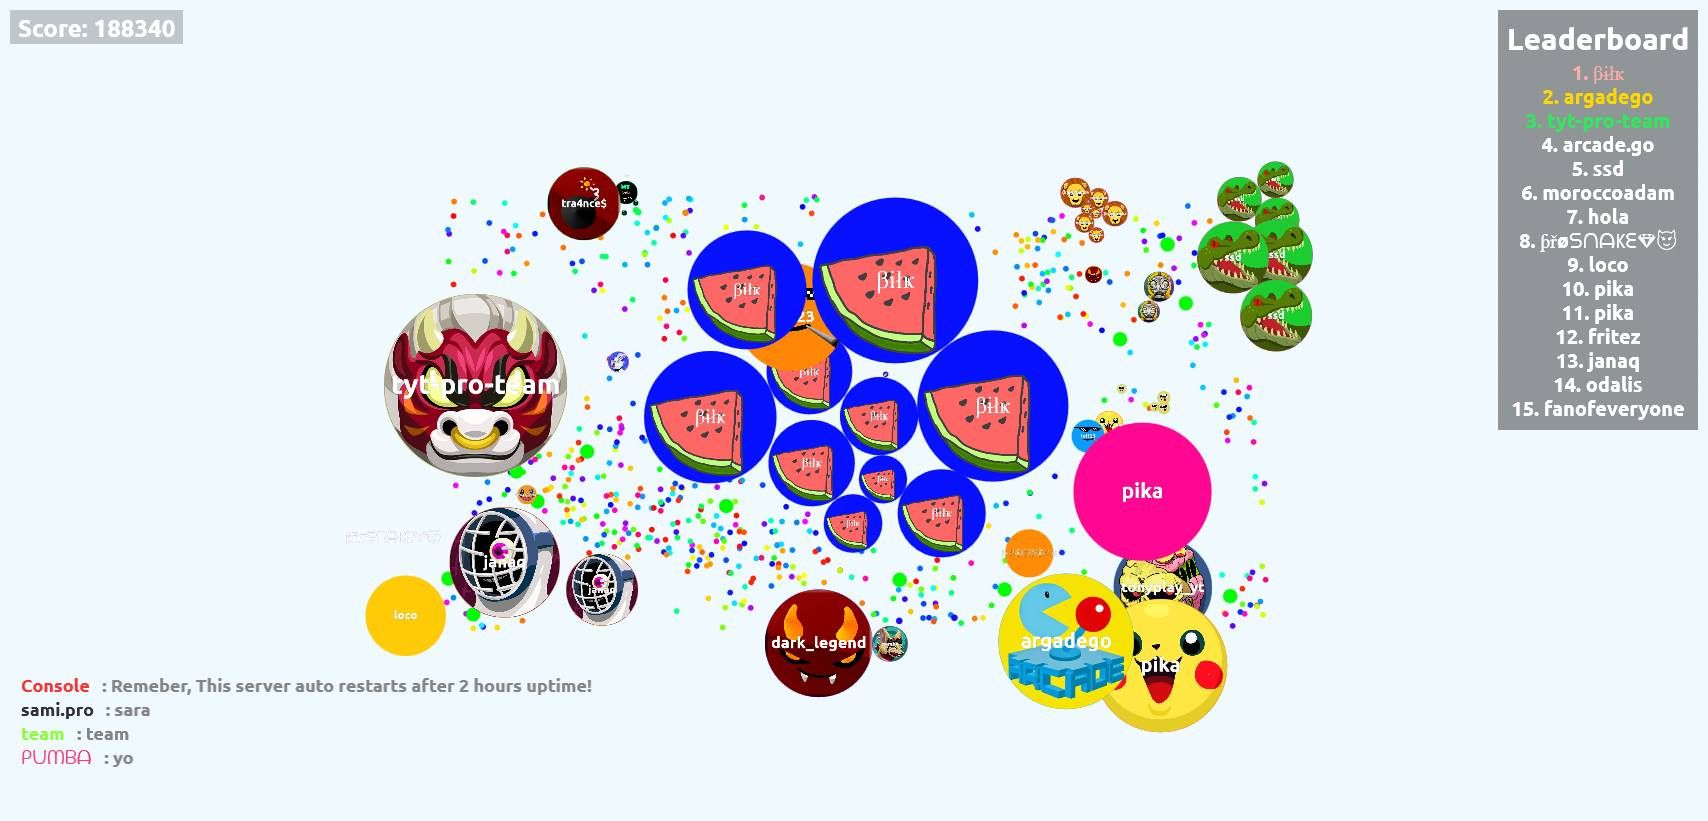 188340 agariofun com best agar io server game score βɨłҝ